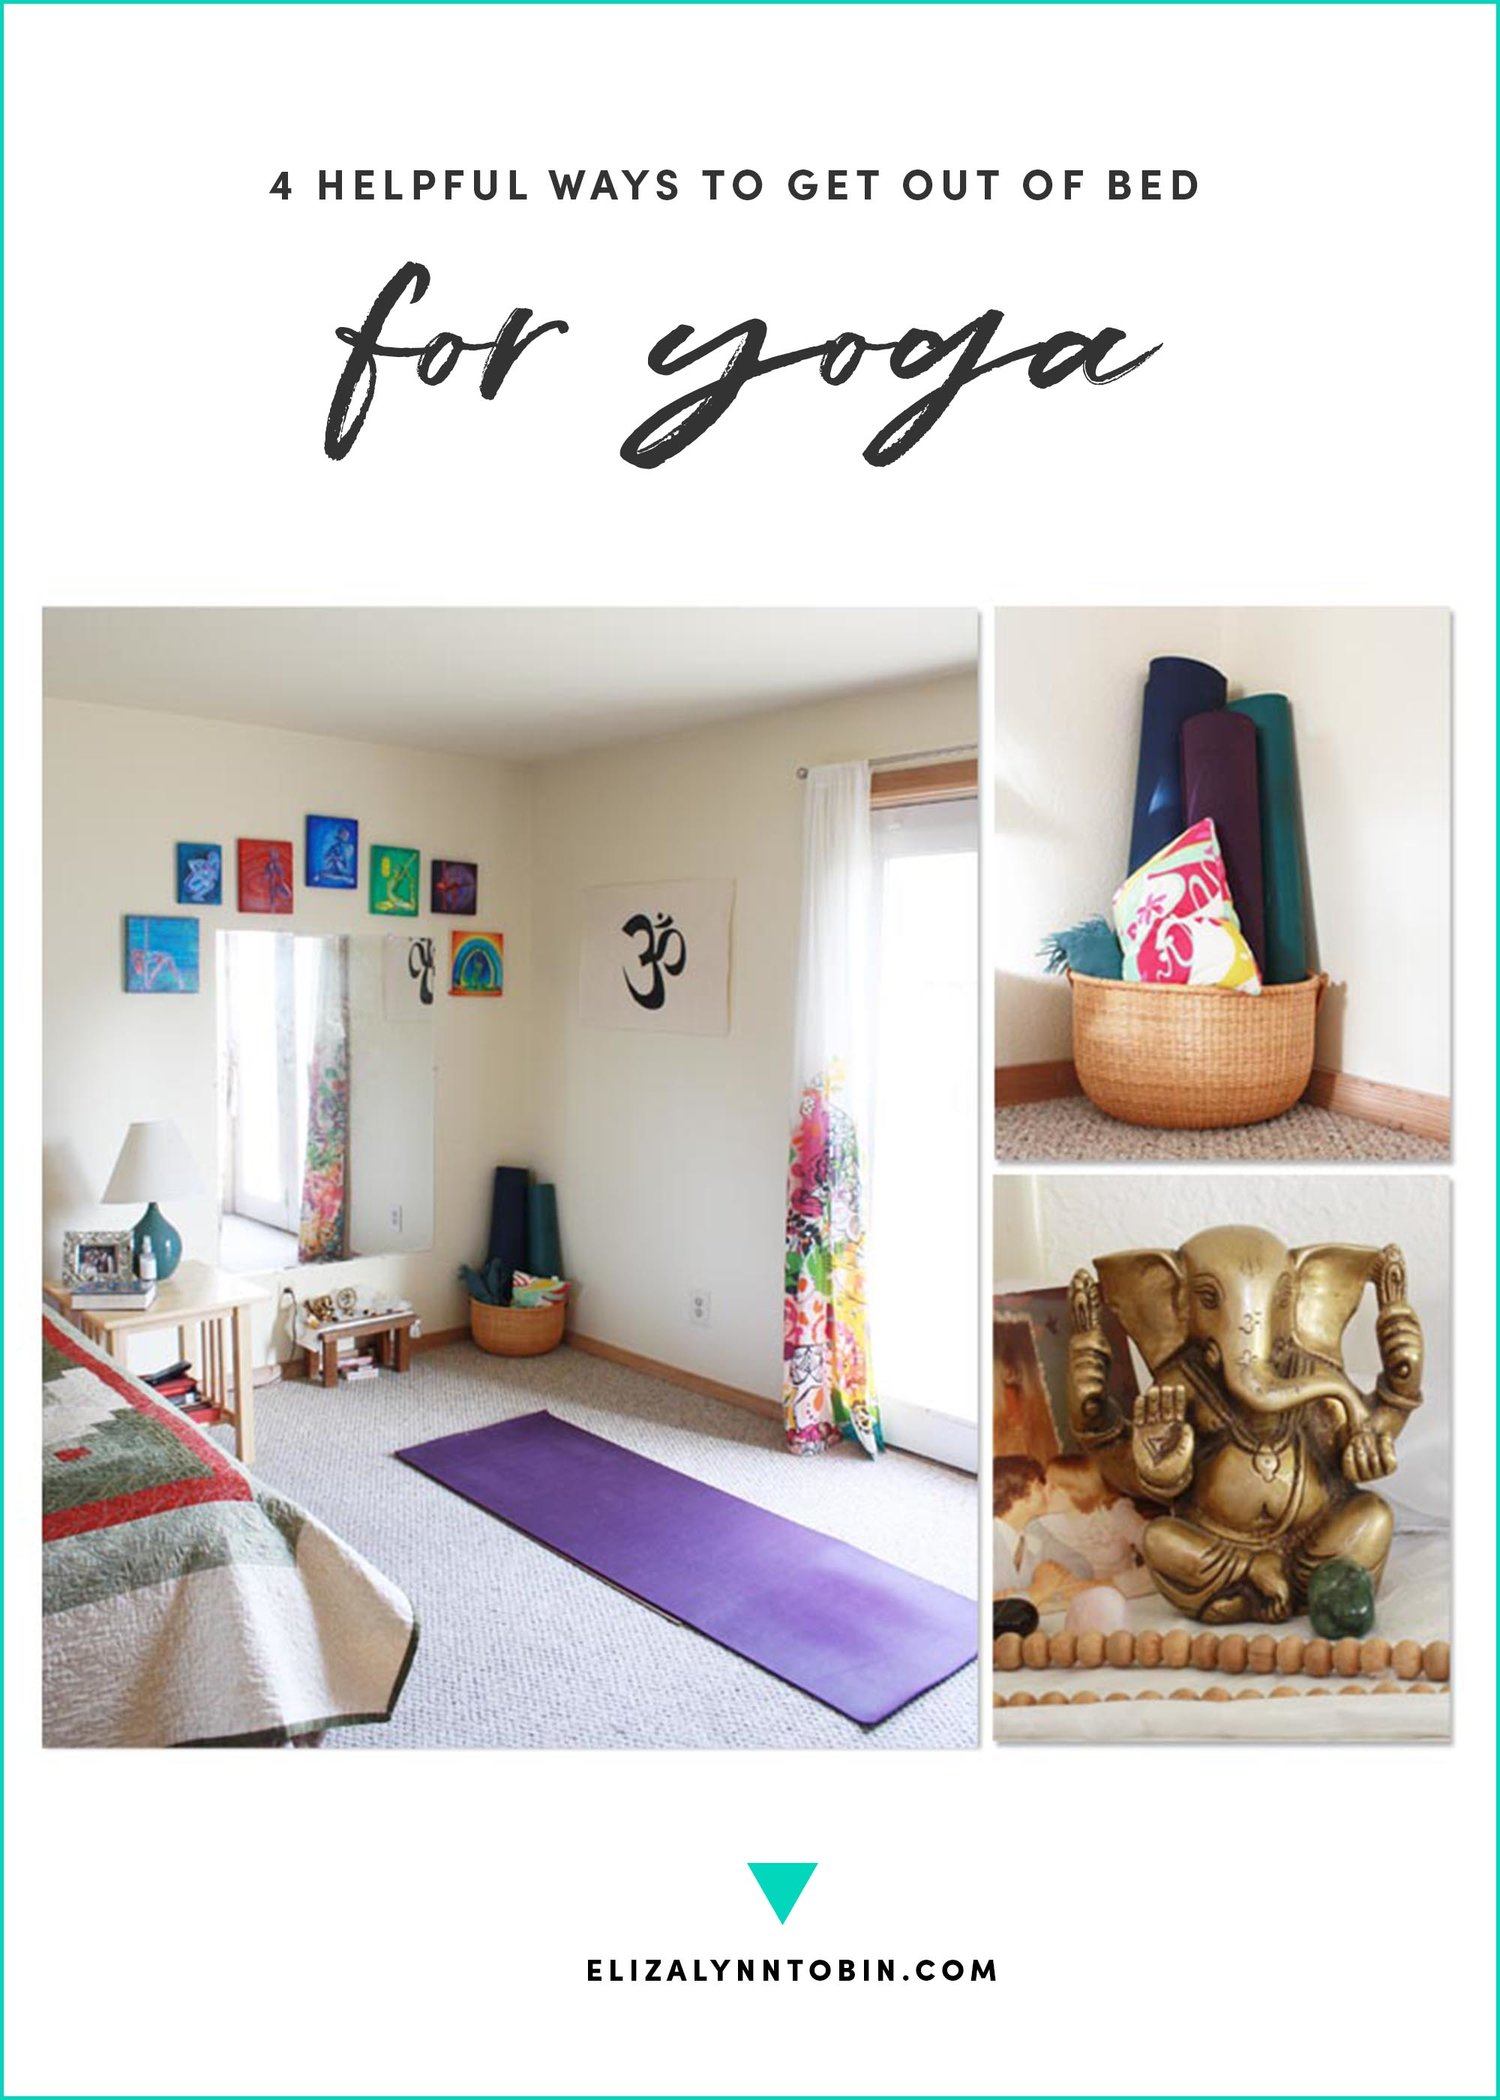 4 Helpful Ways To Get Out Of Bed For Yoga My At Home Yoga Space